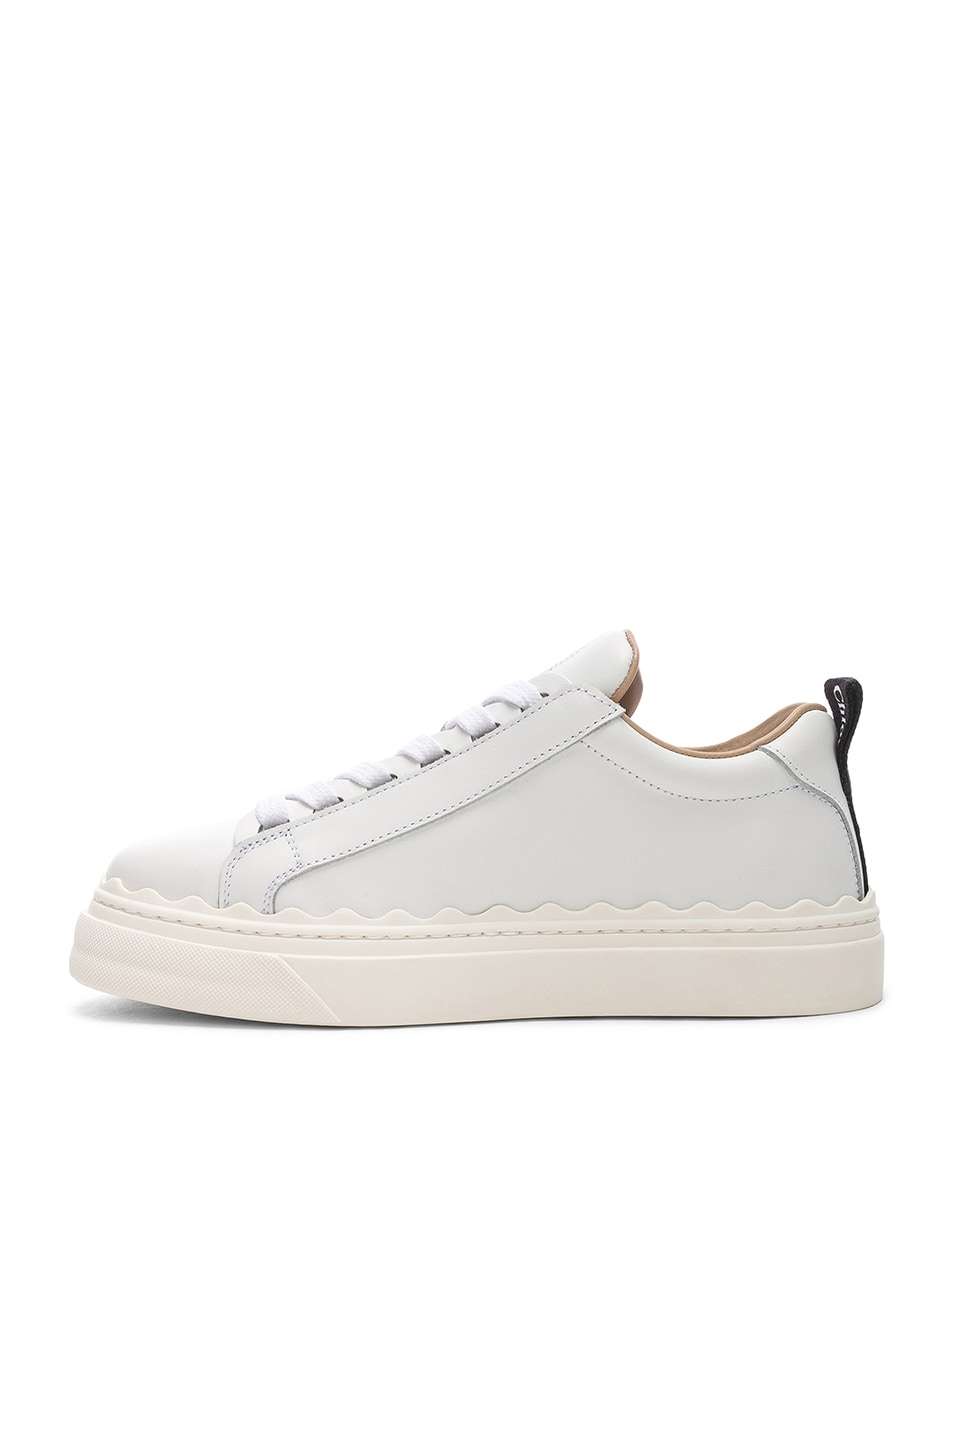 Image 5 of Chloe Low Top Sneakers in White